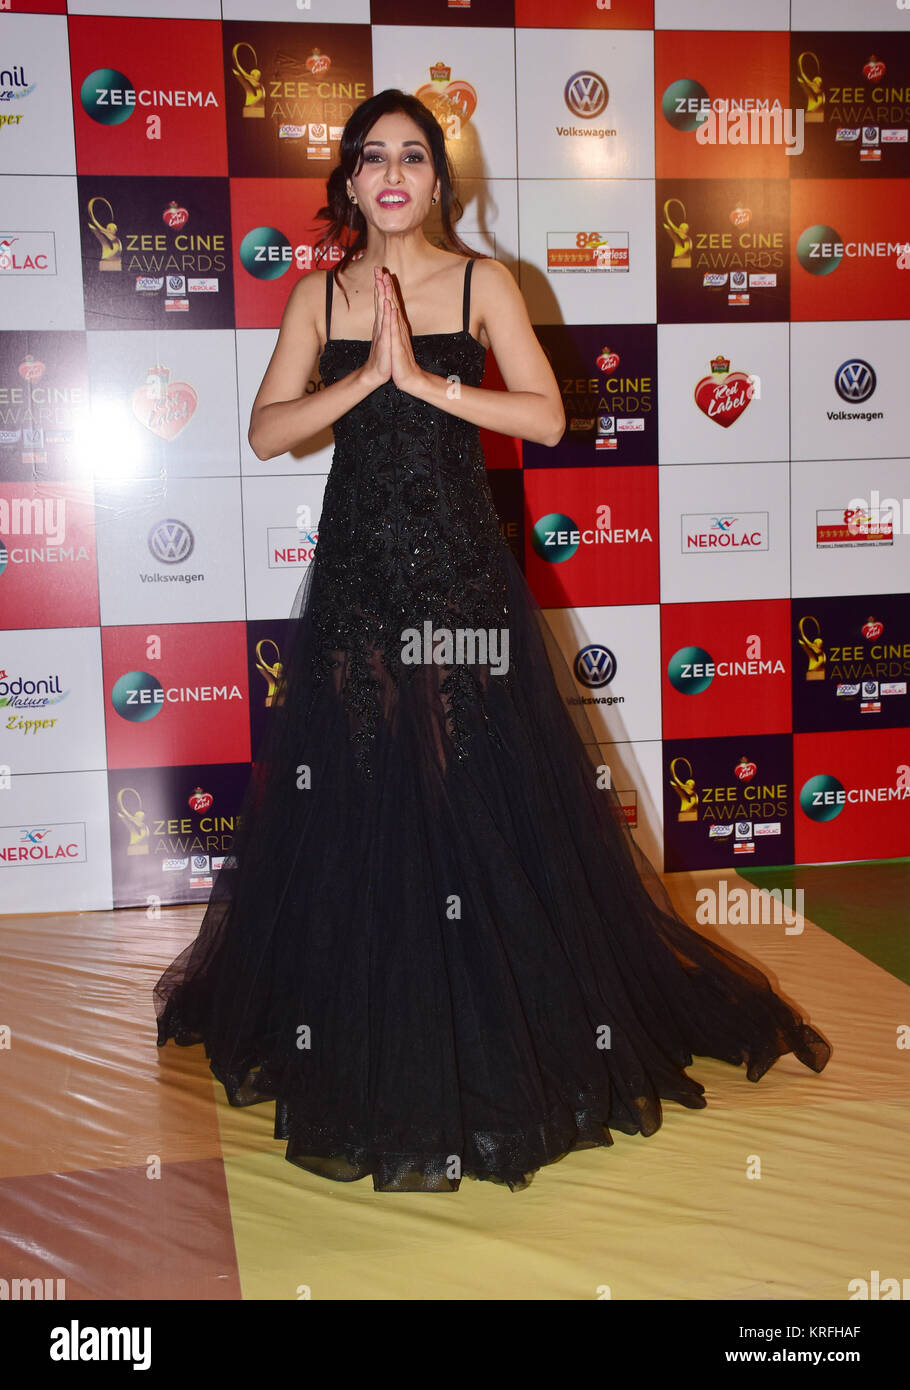 Mumbai, India. 19th Dec, 2017. Indian film actress Pooja Chopra attend the Red carpet event of Zee Cine Awards 2018 Stock Photo